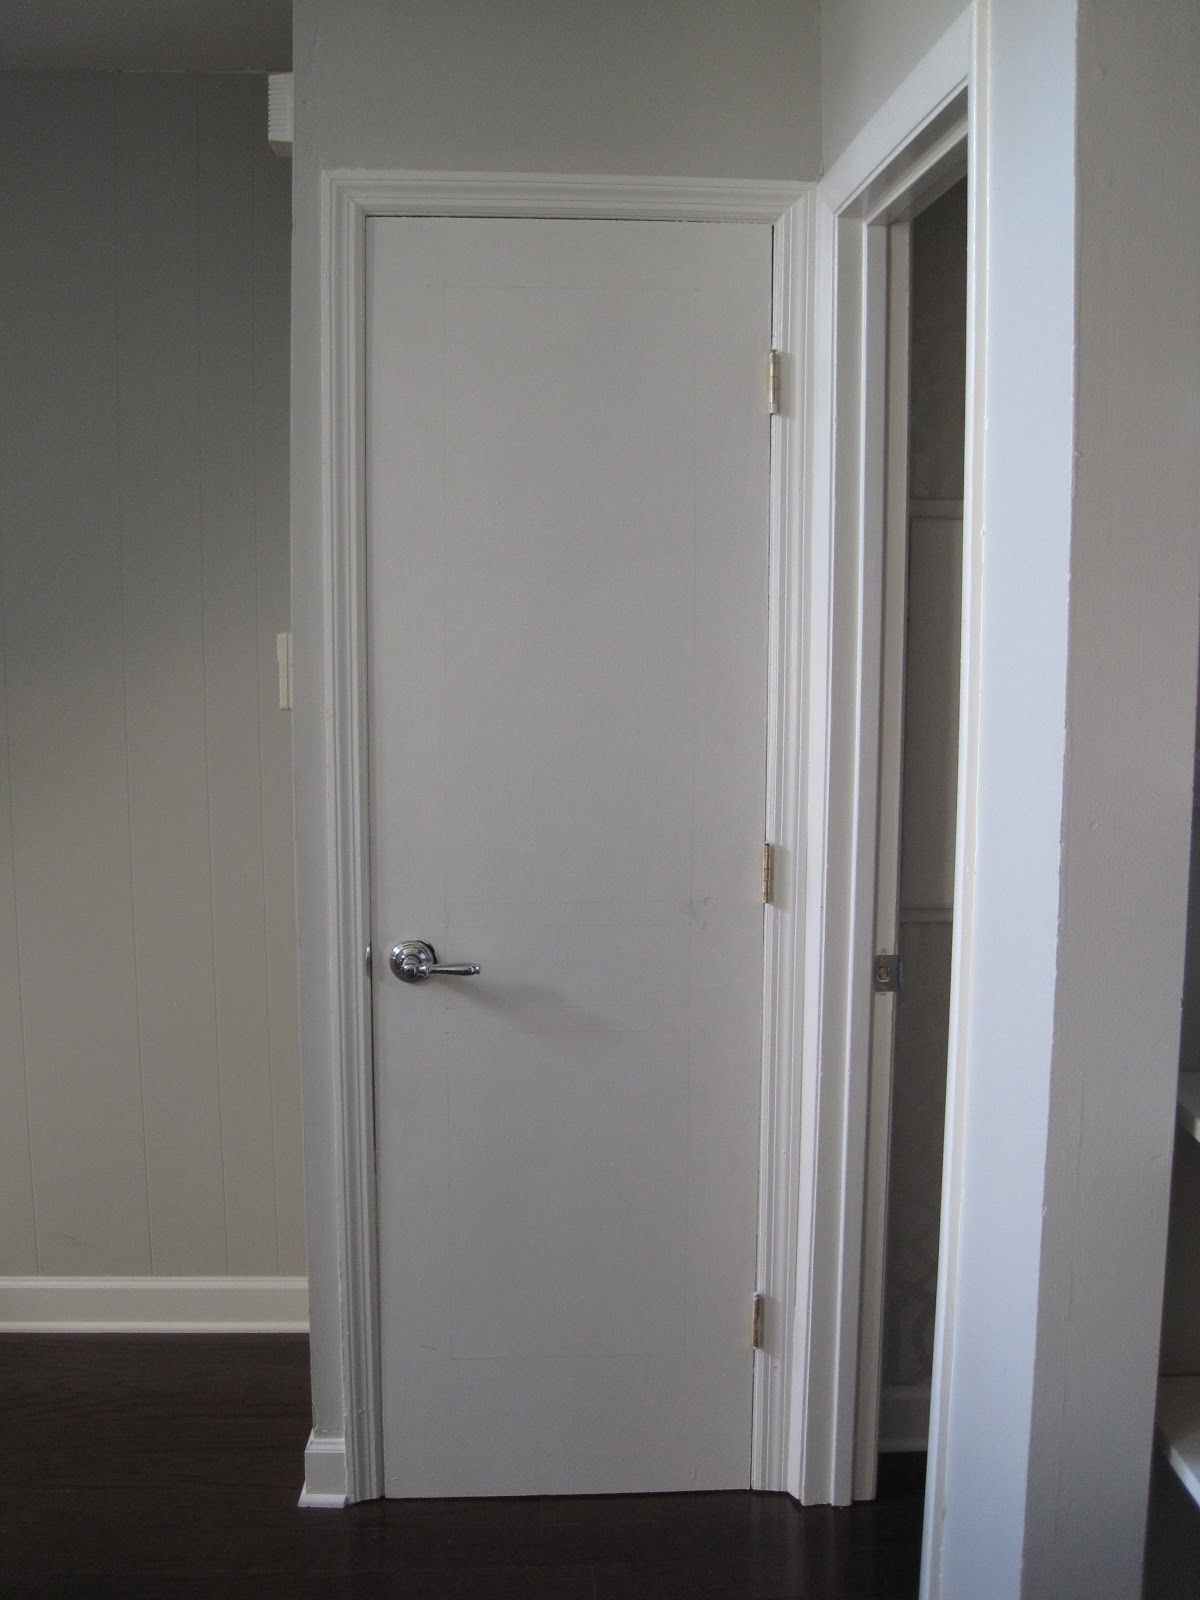 plain white interior doors. This Is For If You Have Those Plain Flat Hollow Core Doors In Your Home. White Interior A